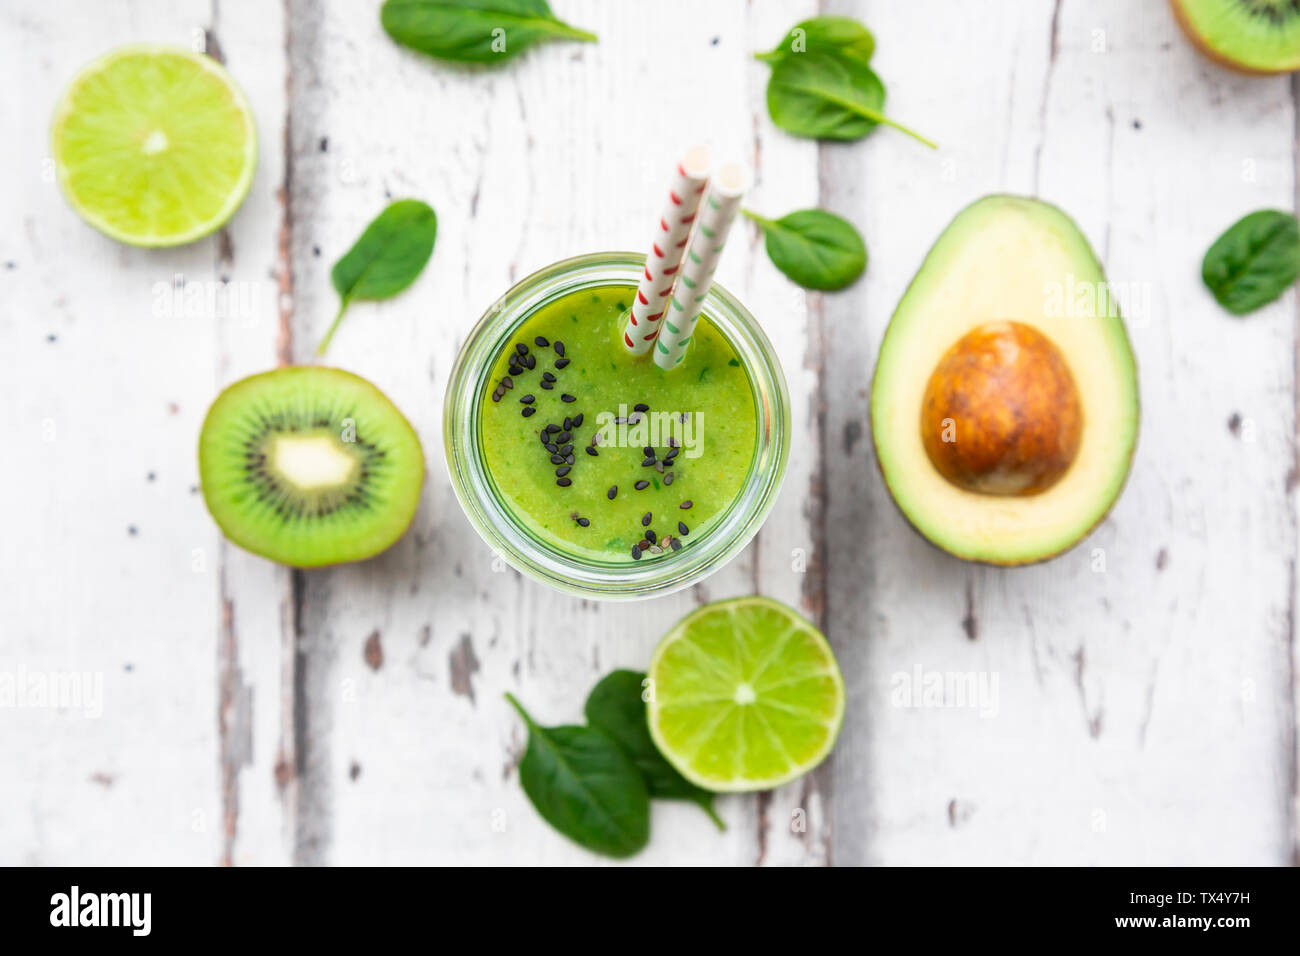 Glass of green smoothie with avocado, spinach, kiwi and lime - Stock Image